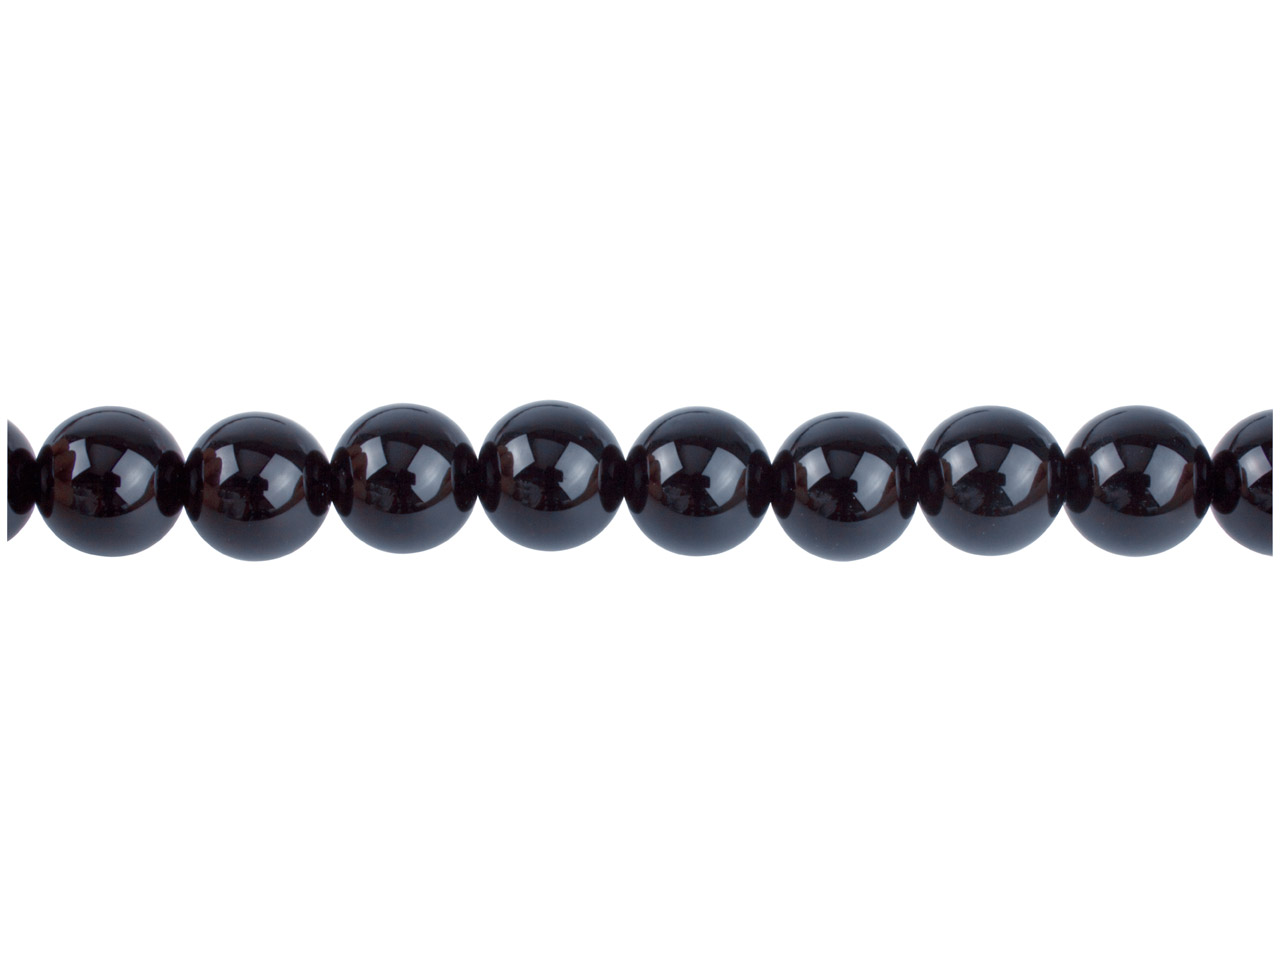 Black Agate Semi Precious Round    Beads 10mm 16